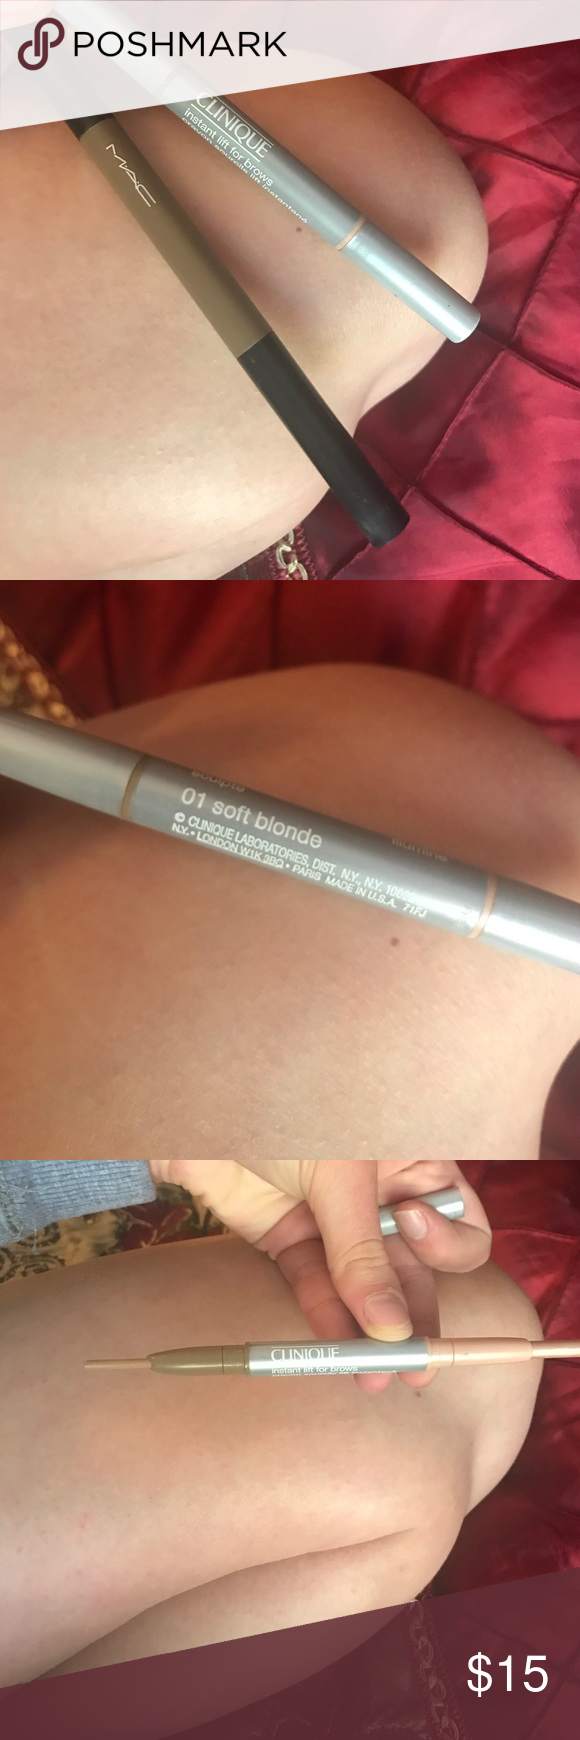 """Like new Clinique and MAC eye brow fillers The Clinique is in soft blonde and the MAC is """"A46"""" in light brown Clinique Makeup Eyebrow Filler"""